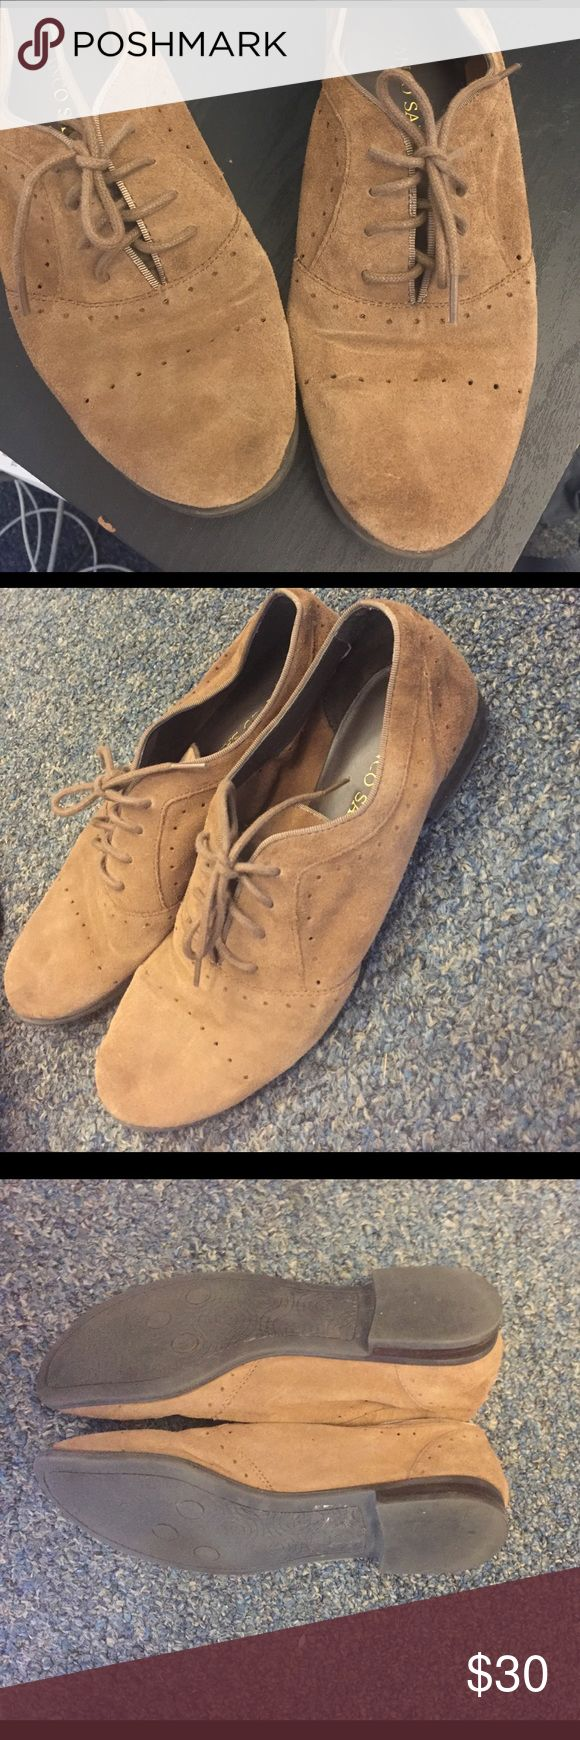 Franco Sarto suede oxfords, size 6 Great for both professional and casual wear! Classic brown suede Oxford shoes in excellent condition - worn only a few times. Franco Sarto Shoes Flats & Loafers